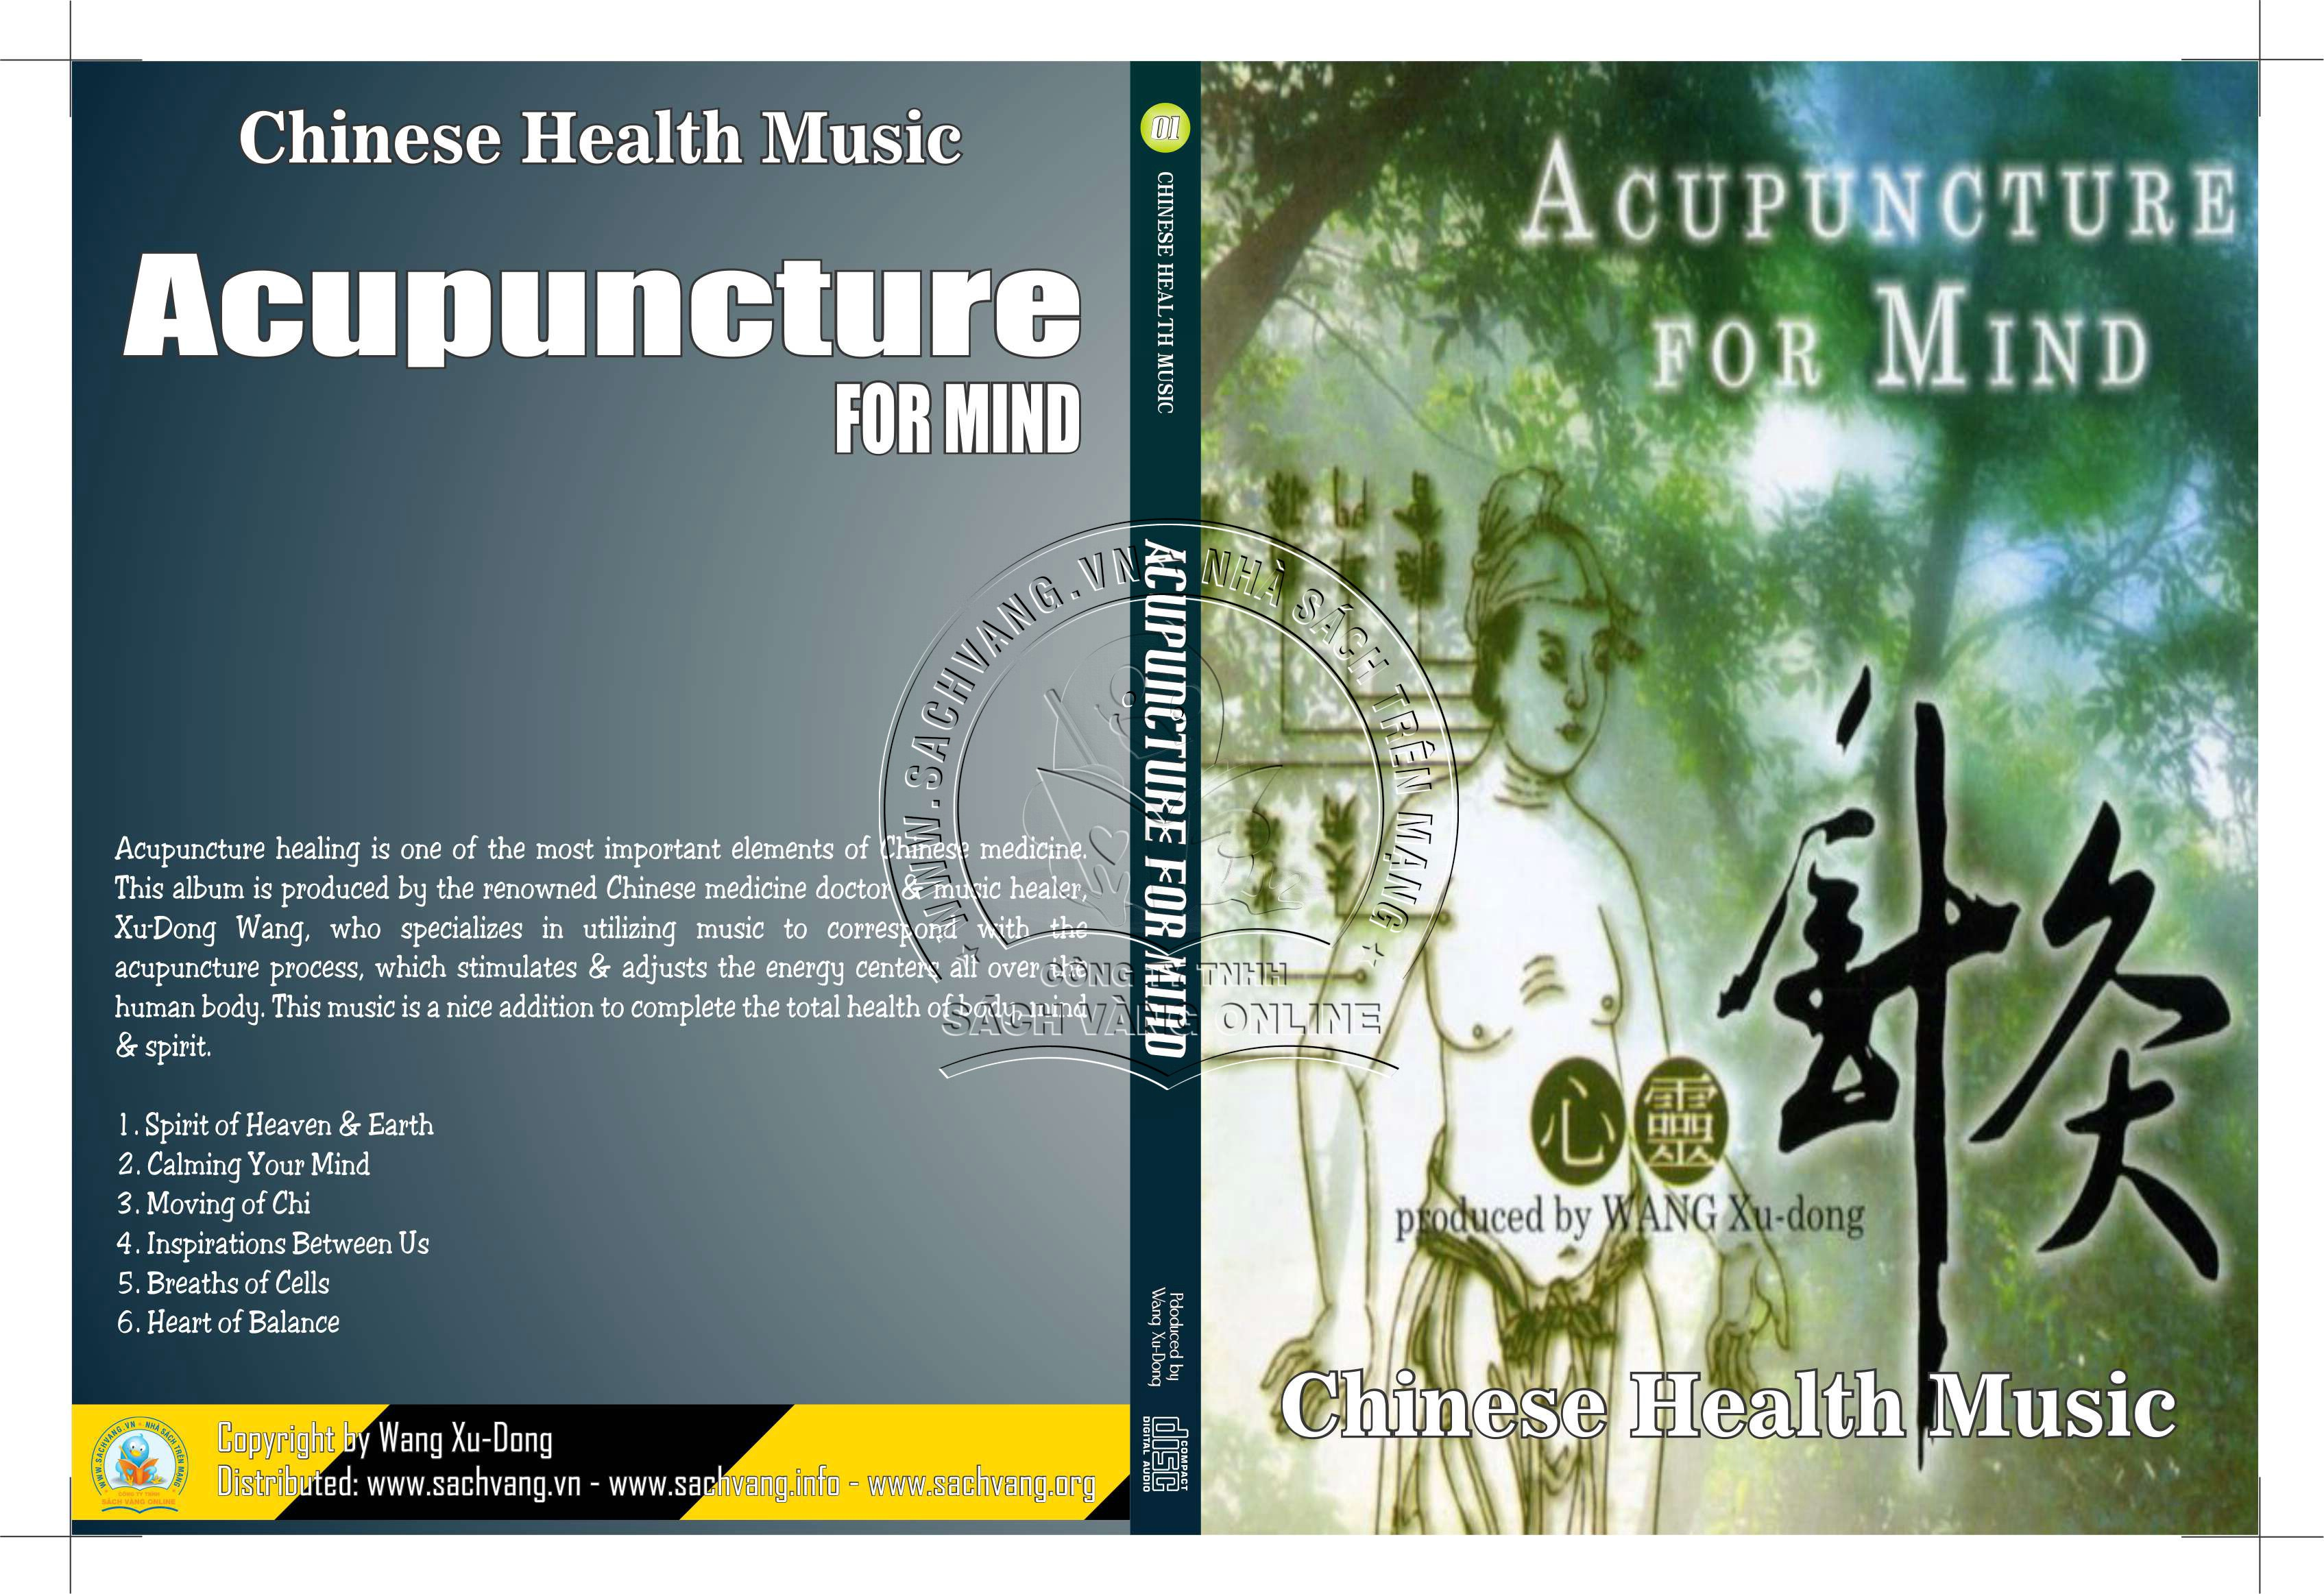 Chinese Health Music - 01 - Acupuncture for mind